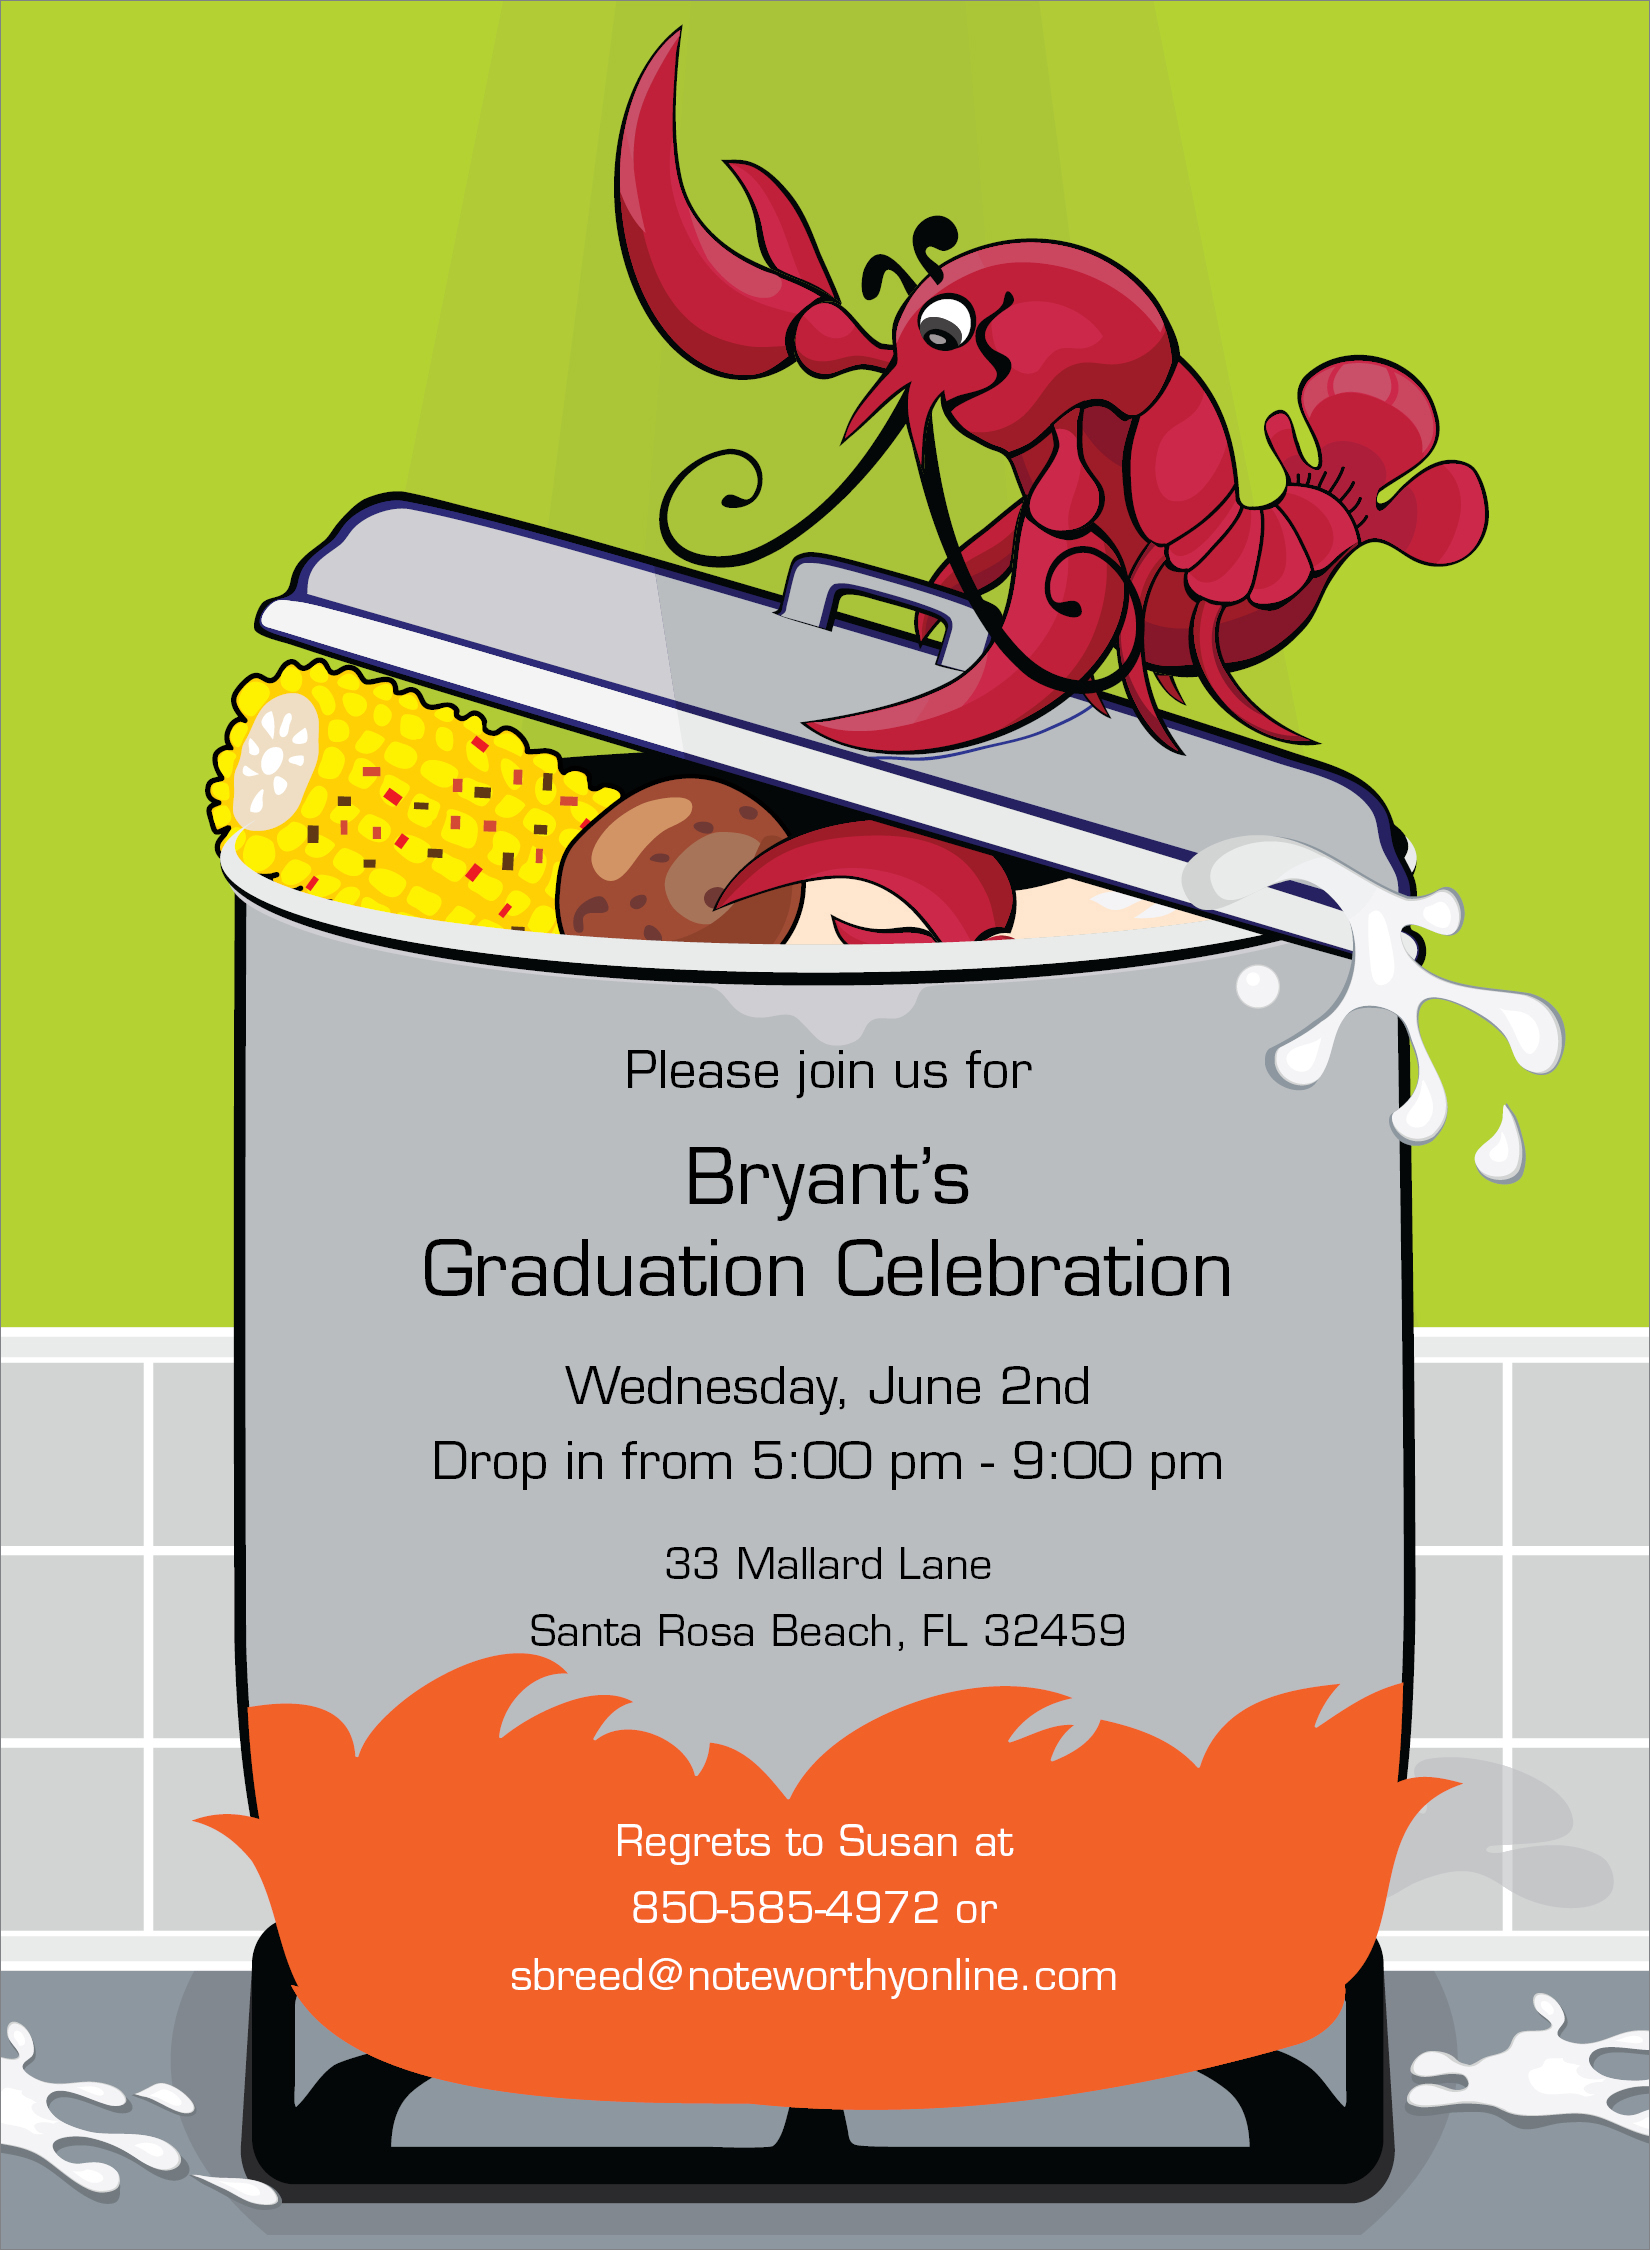 Crawfish Boil Invitation - This fun and tasty invitation features a large silver pot over an open flame, with everything you need for a delicious seafood dinner!  Perfect for a bbq or crawfish boil.  Includes white envelopes.